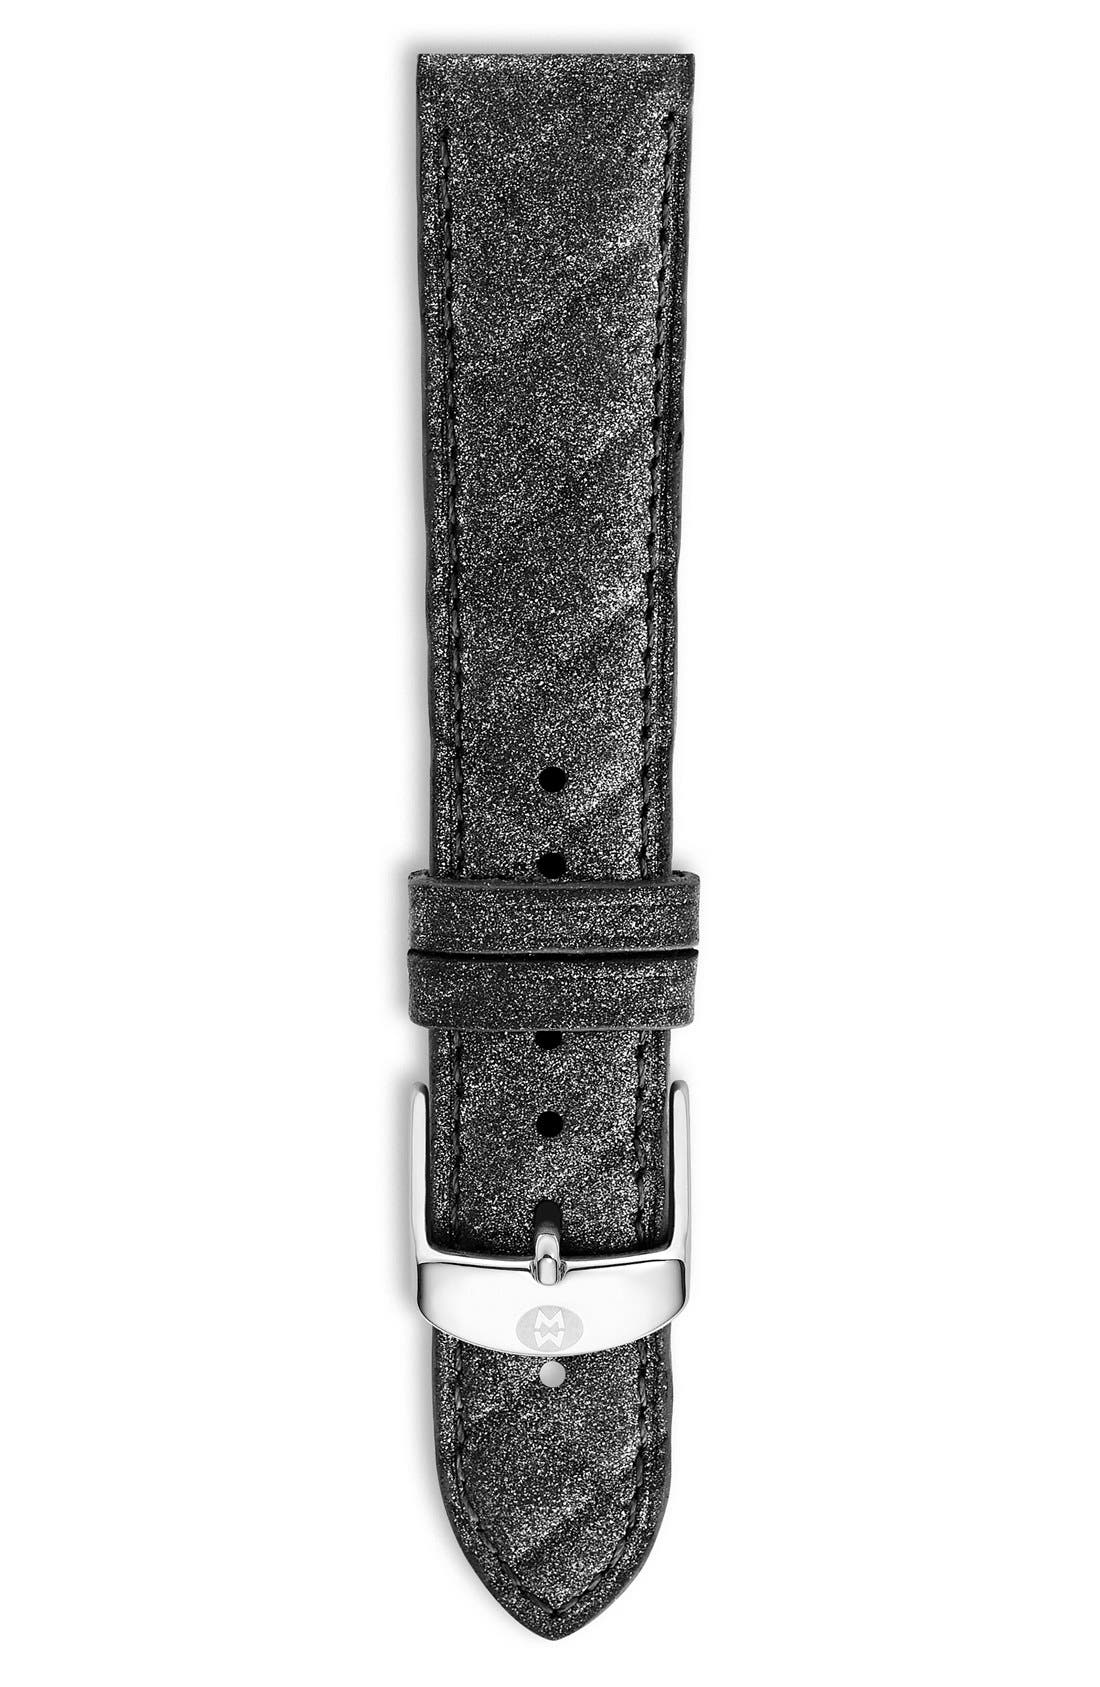 18mm Quilted Leather Watch Strap,                             Main thumbnail 1, color,                             Steel Blue